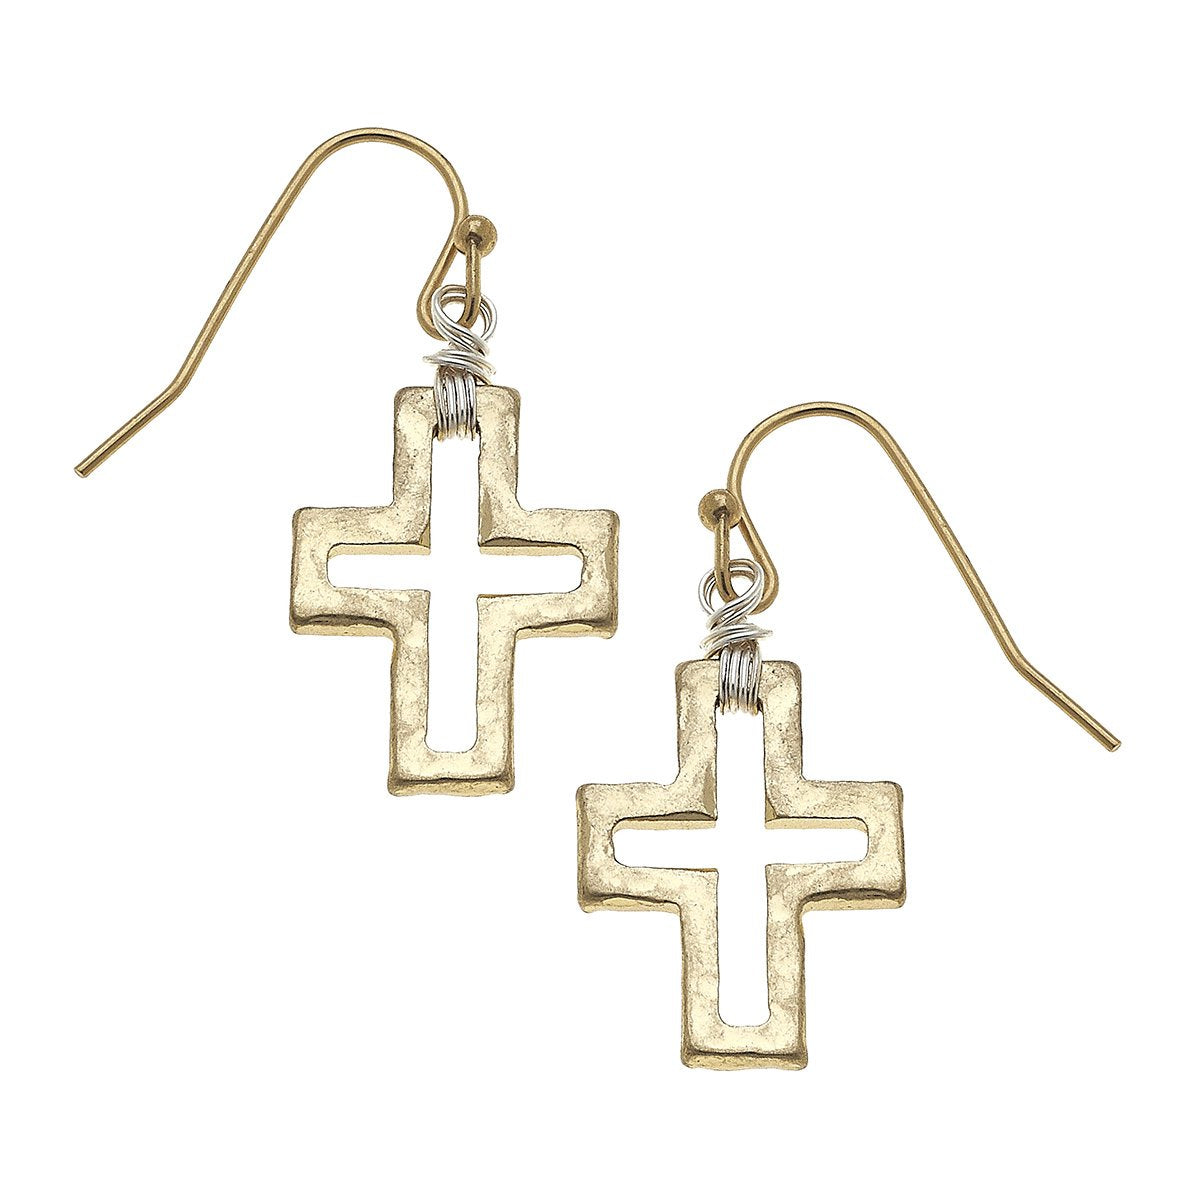 Wire-Wrapped Cross Earrings in Worn Gold